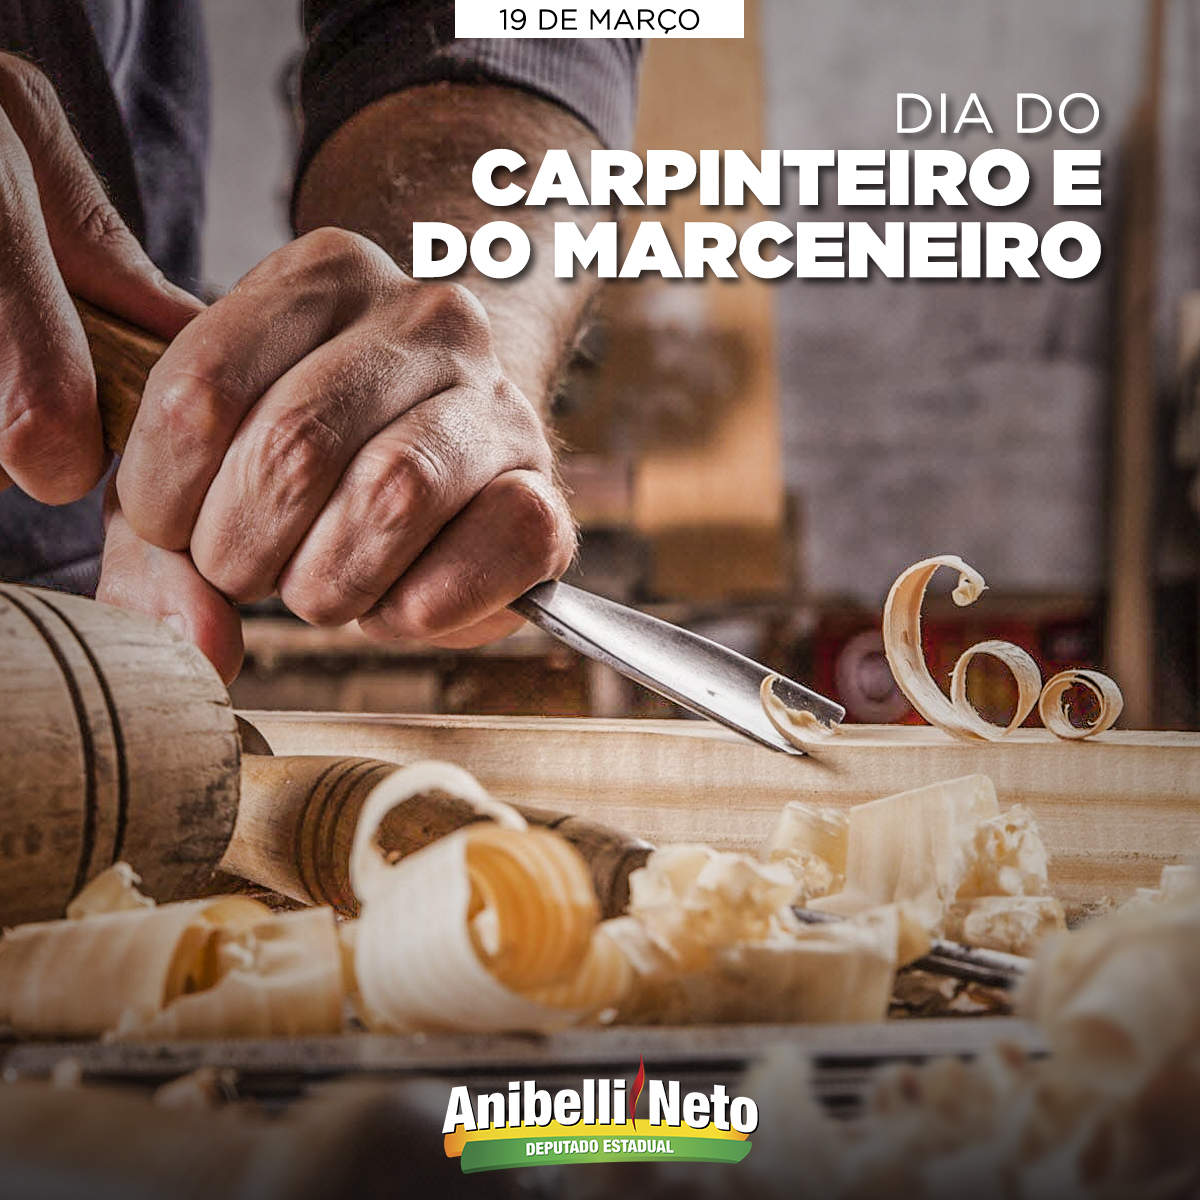 Dia do Carpinteiro e do Marceneiro